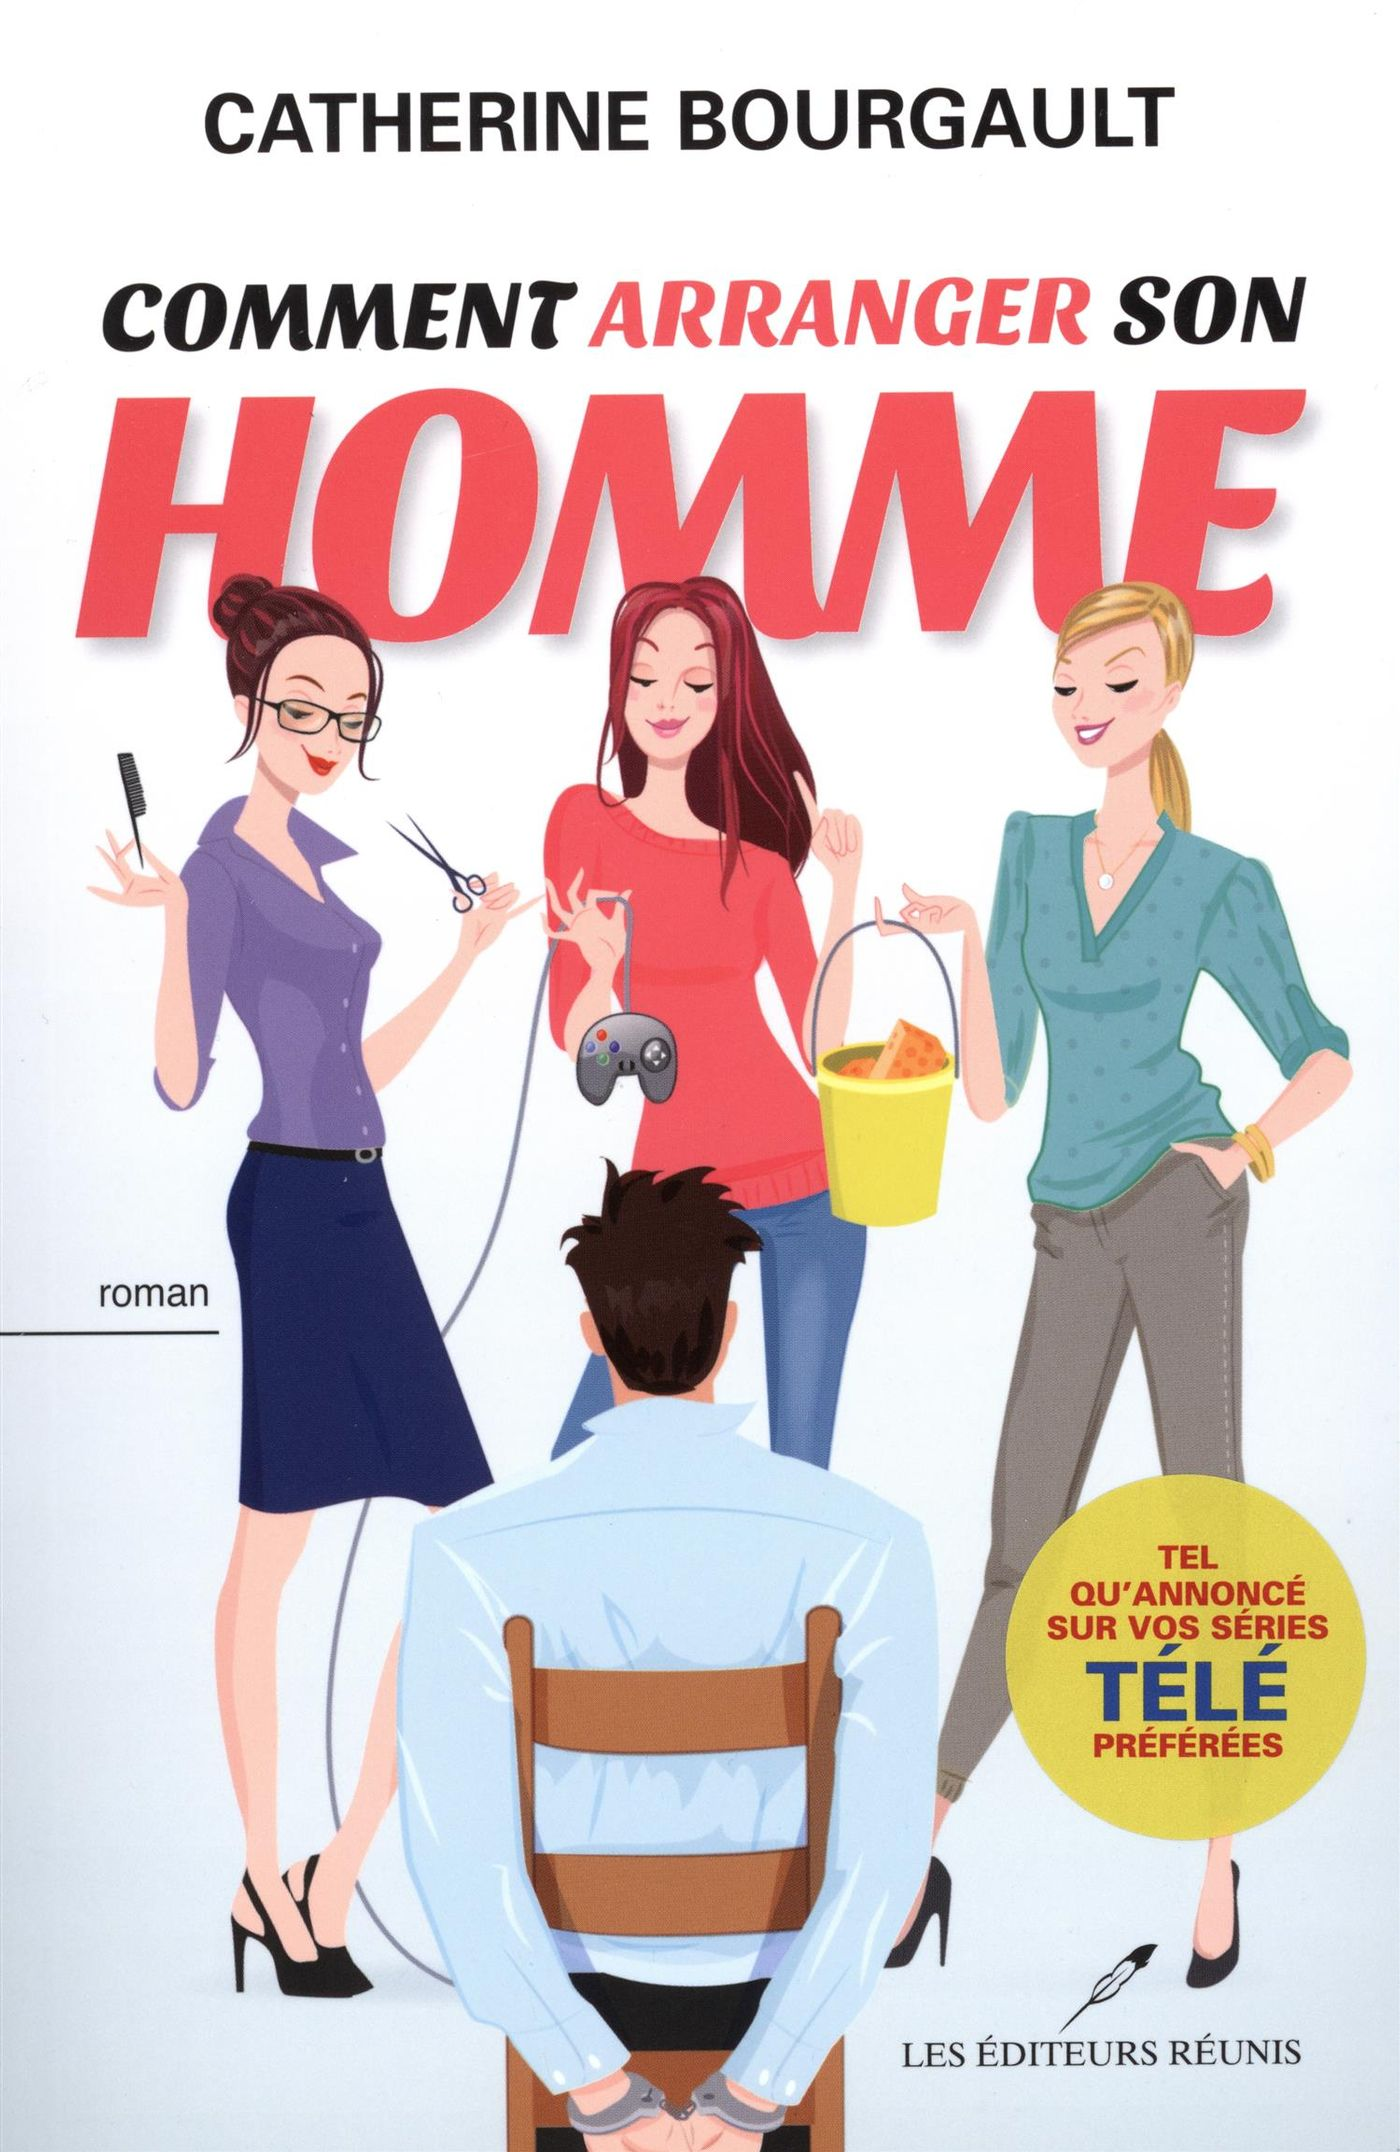 Comment arranger son homme